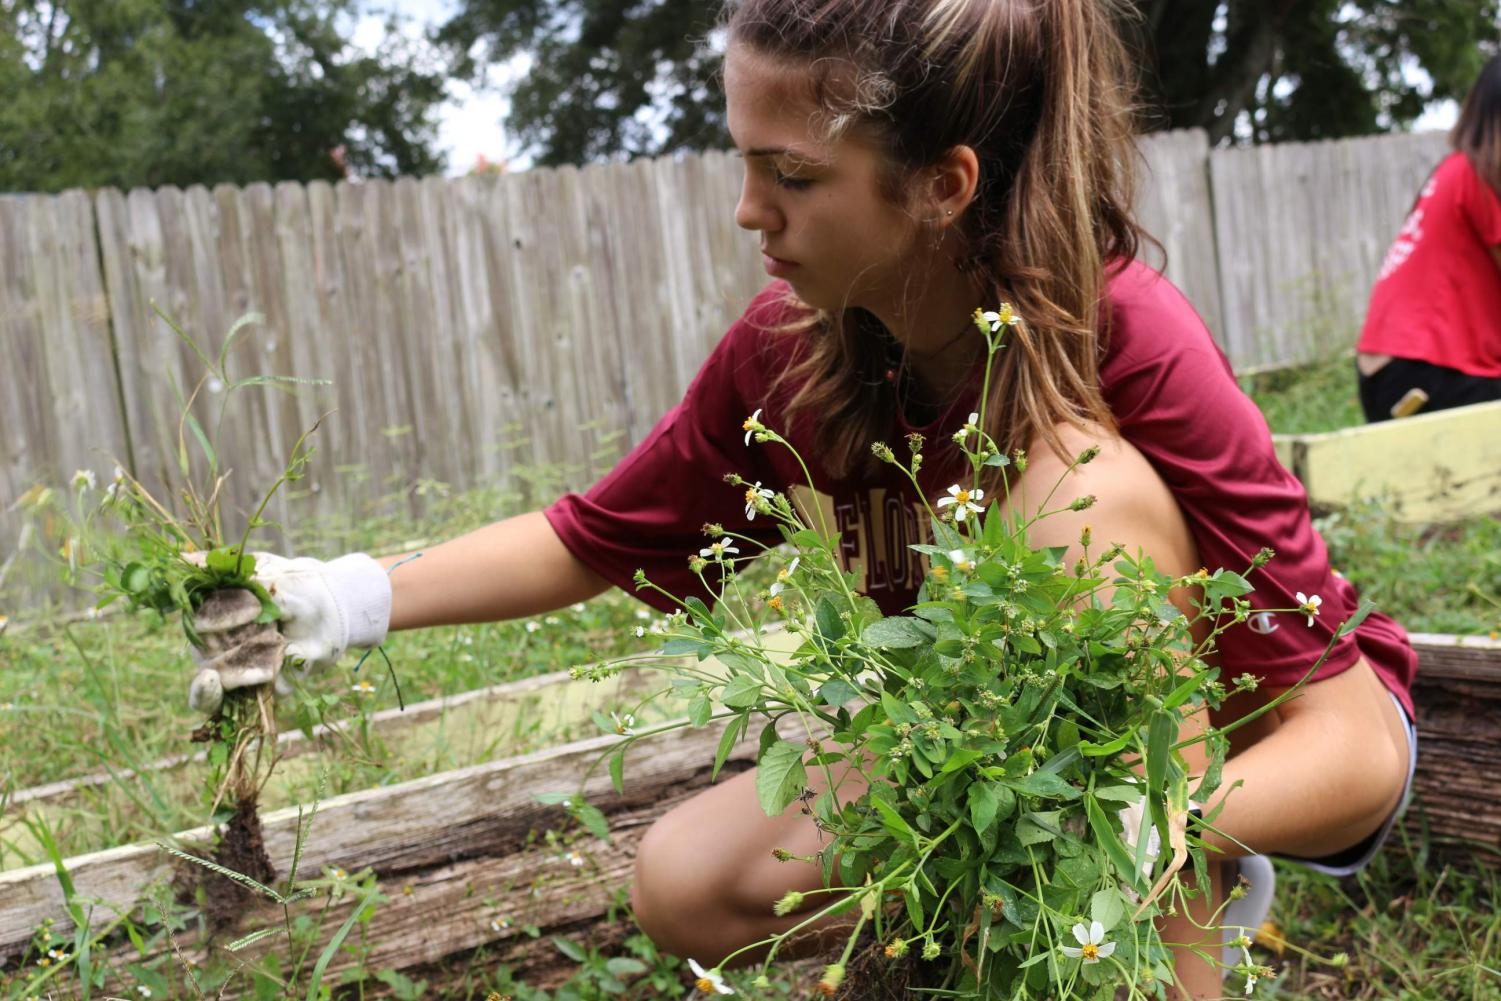 Allyson+May+%28%2722%29+helps+weed+the+community+garden+at+the+Habitat+ReStore.